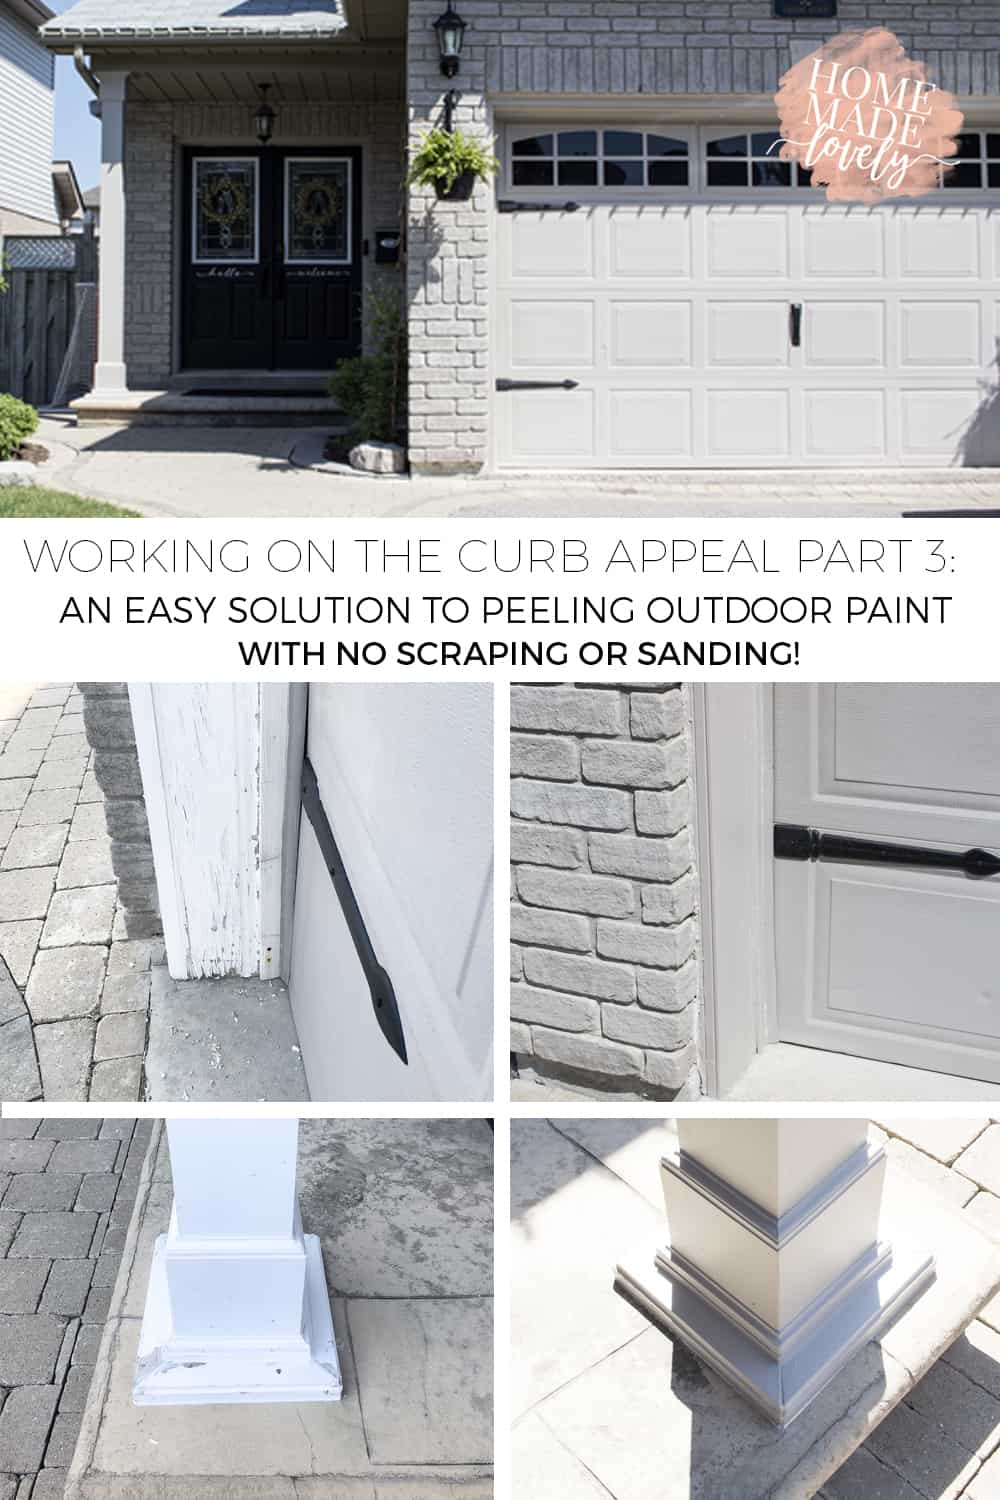 Older homes can have a lot of peeling paint if the wood trim has been exposed to the elements. Here's an easy solution to peeling outdoor paint!